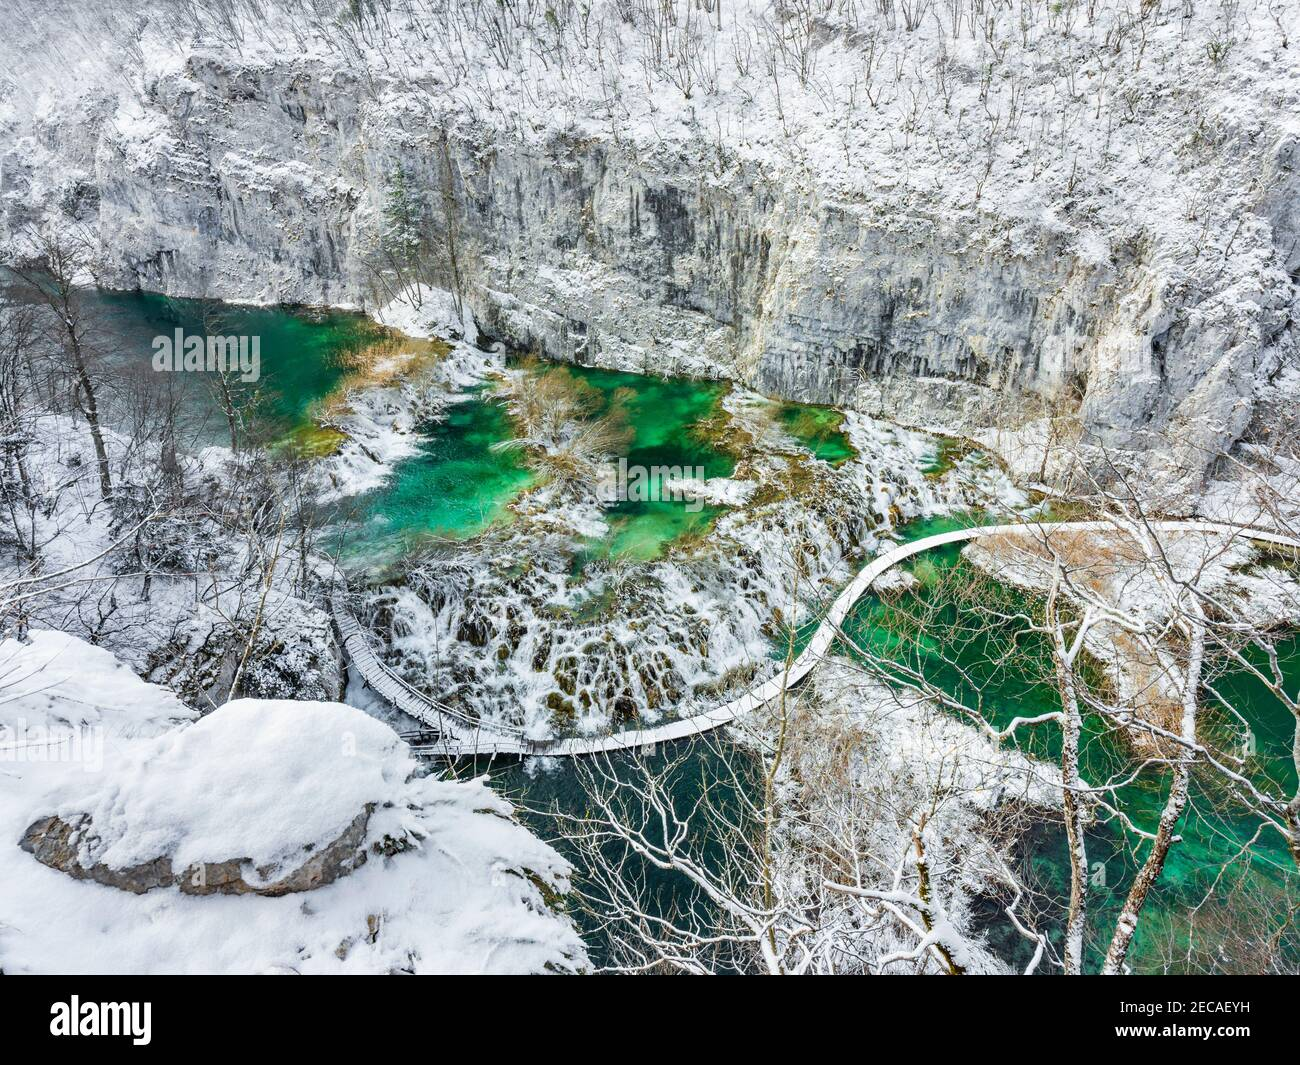 Overwater national park Plitvice lakes Croatia Europe Winter under covered cover snow ice waterflow water flowing flow Stock Photo